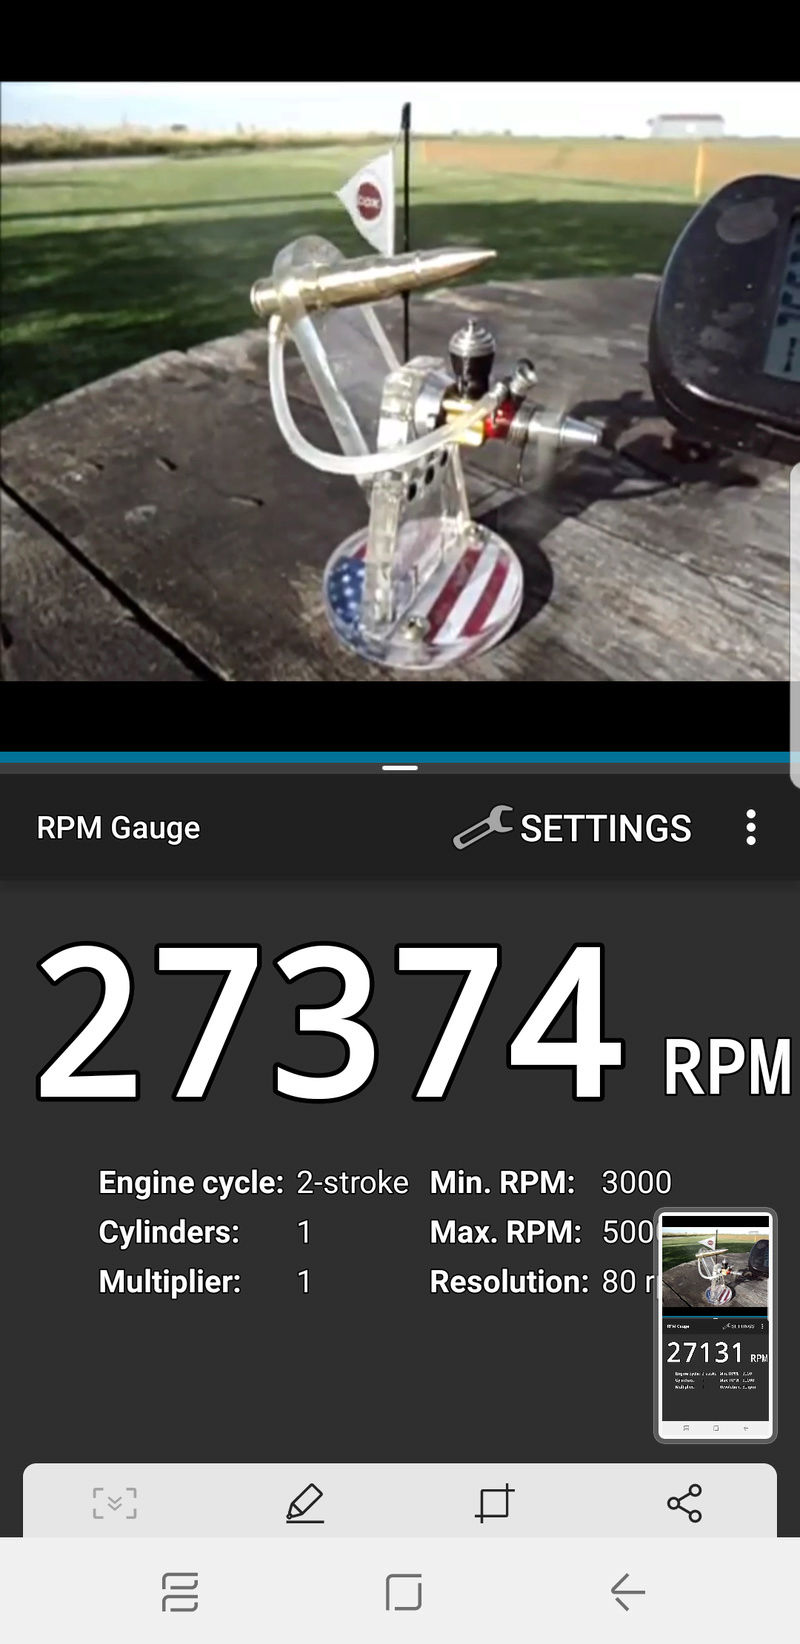 Rpm test in flight videos with Android phones Screen11